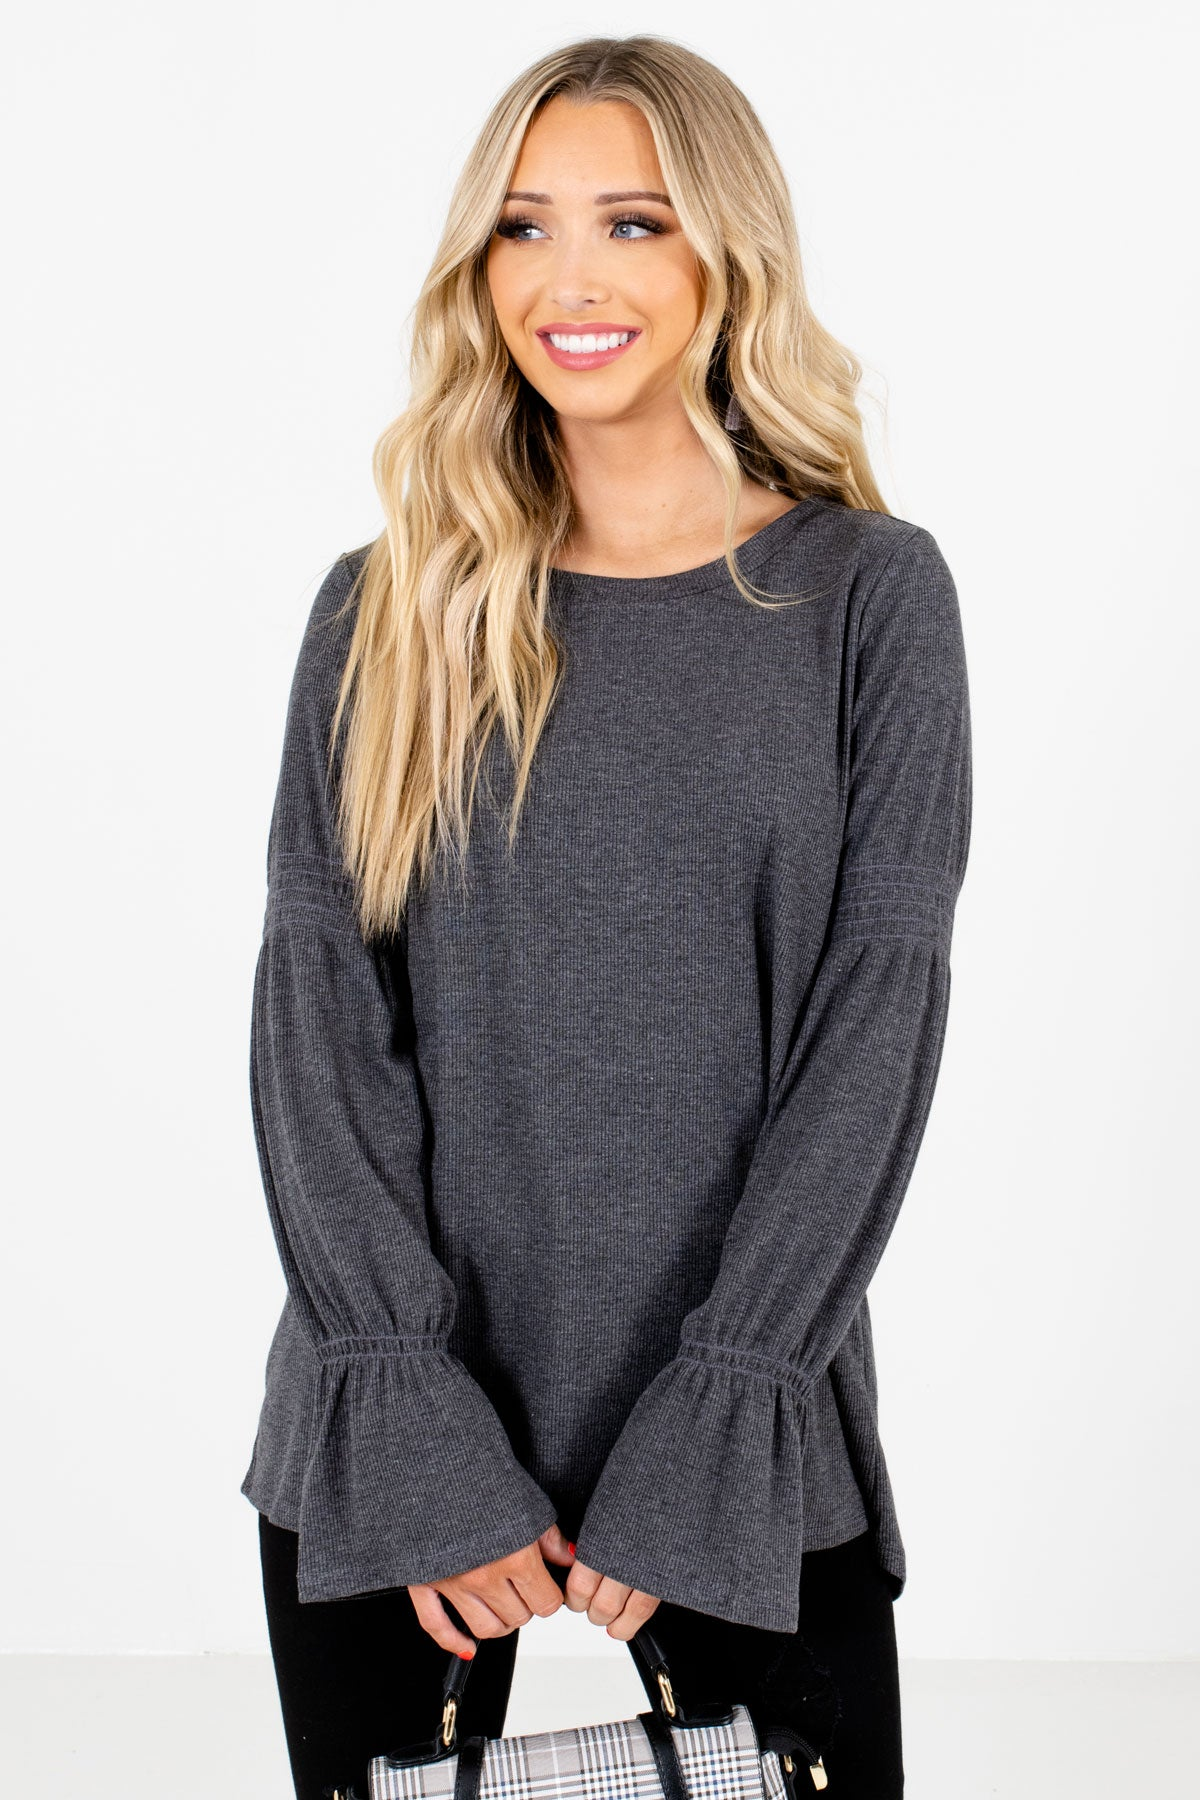 Charcoal Gray High-Quality Ribbed Material Boutique Tops